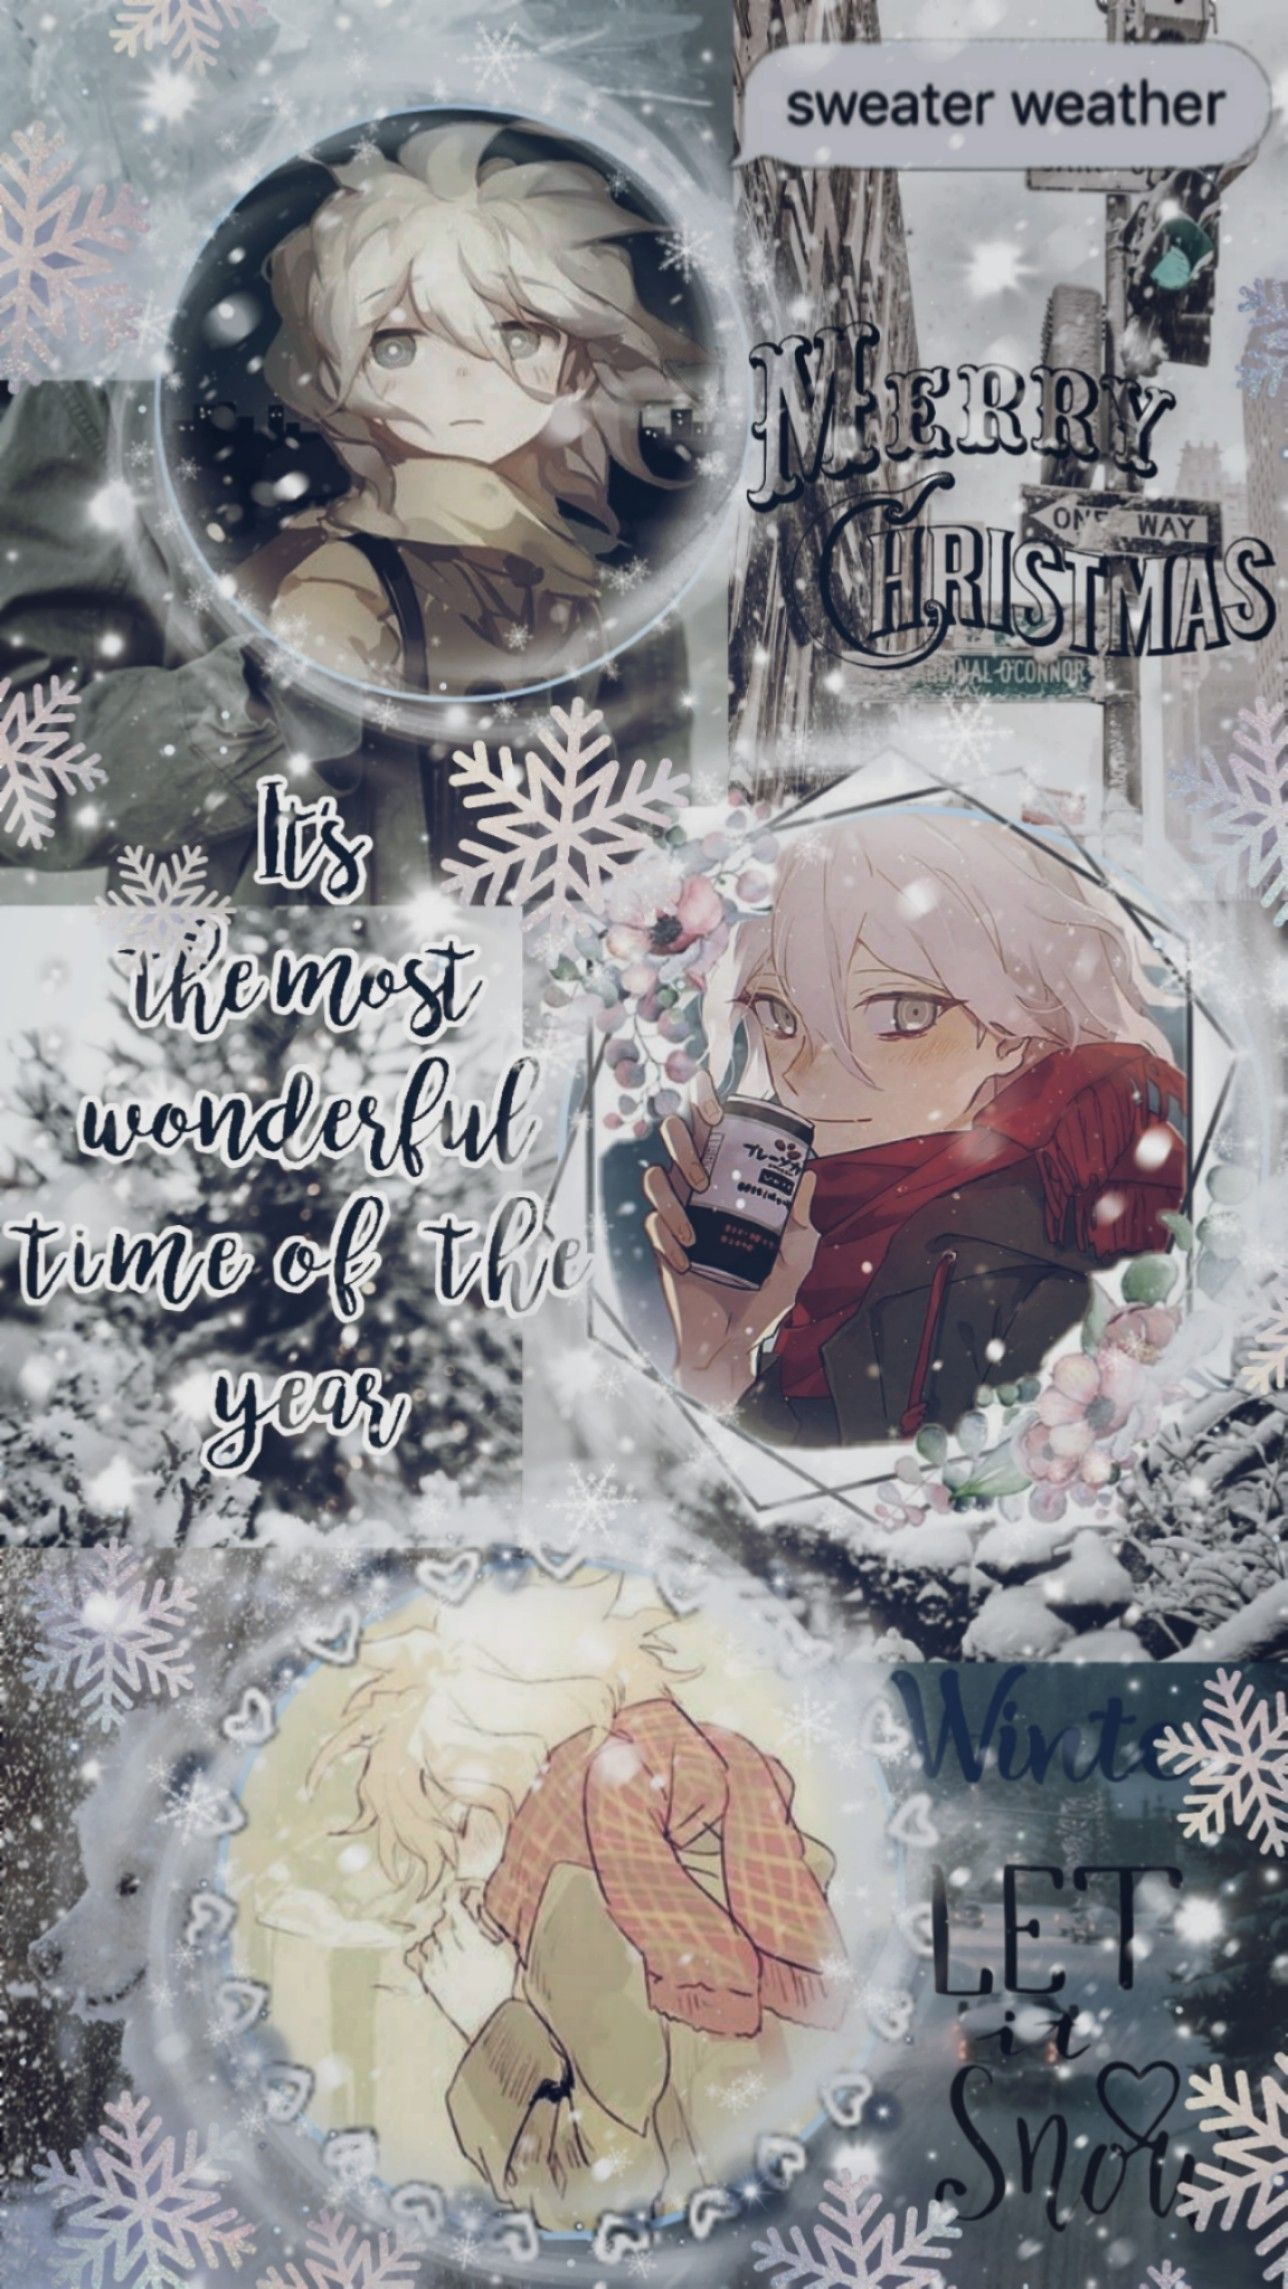 Nagito Komaeda Winter Aesthetic Cute Anime Wallpaper Anime Wallpaper Iphone Anime Wallpaper